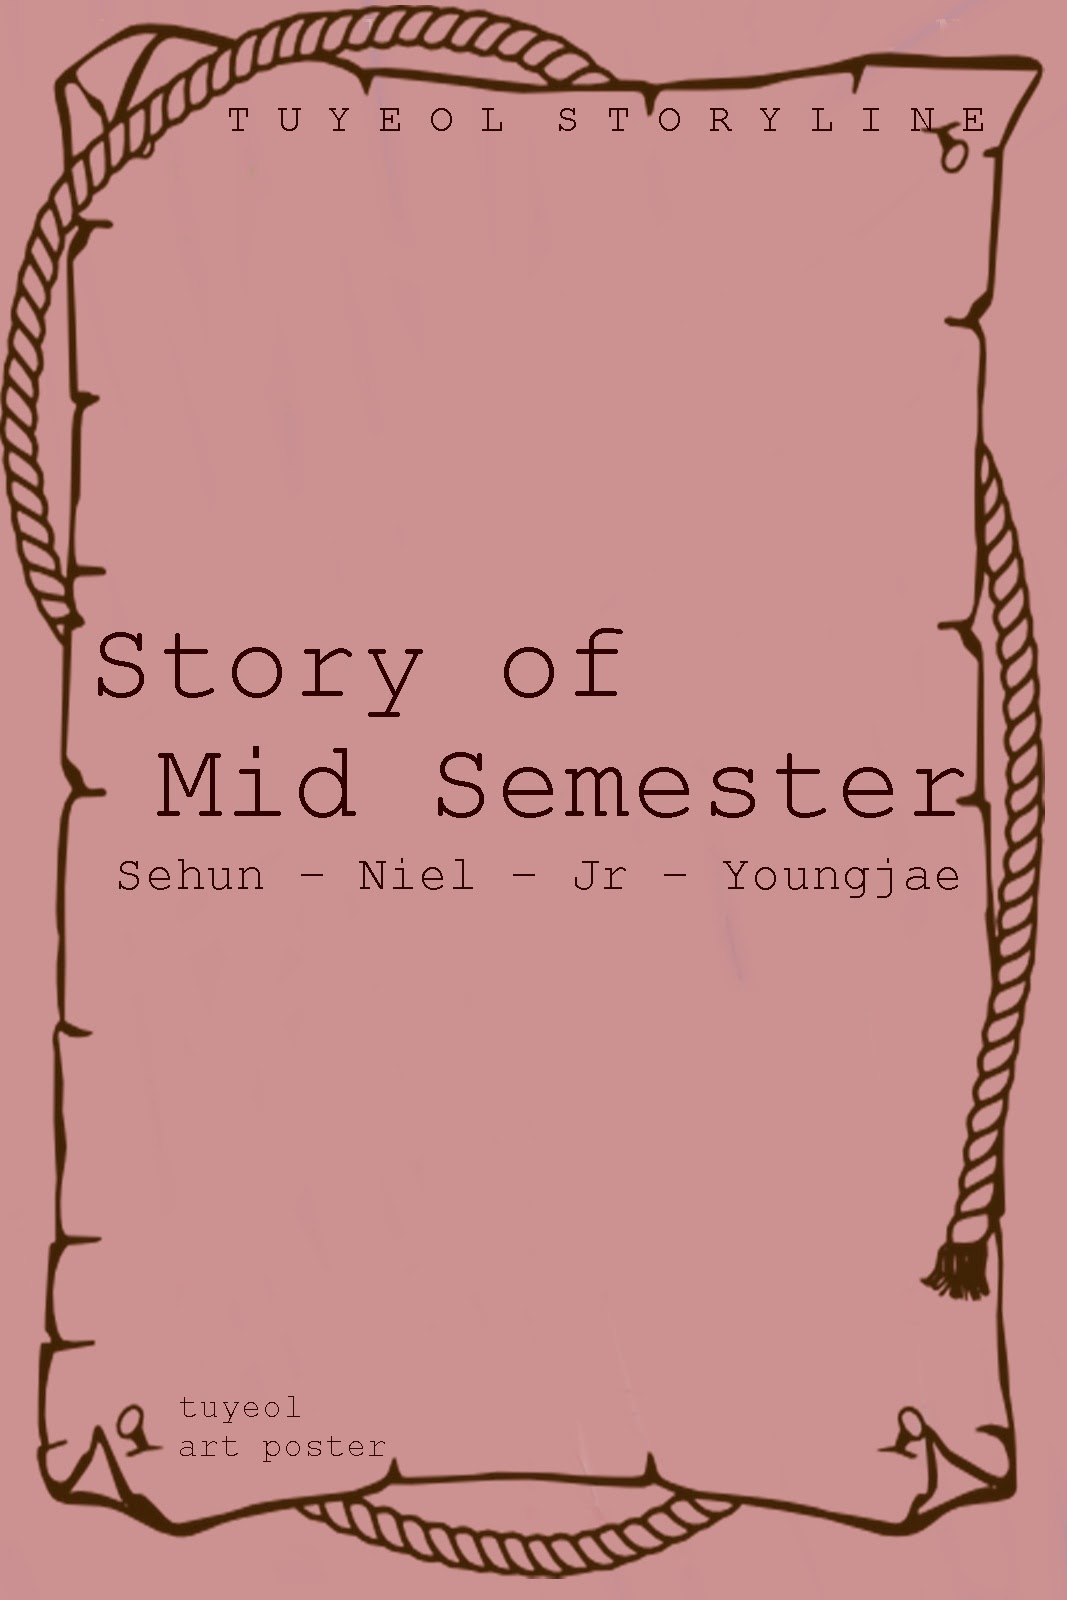 FANFICTION] Story of Mid Semester